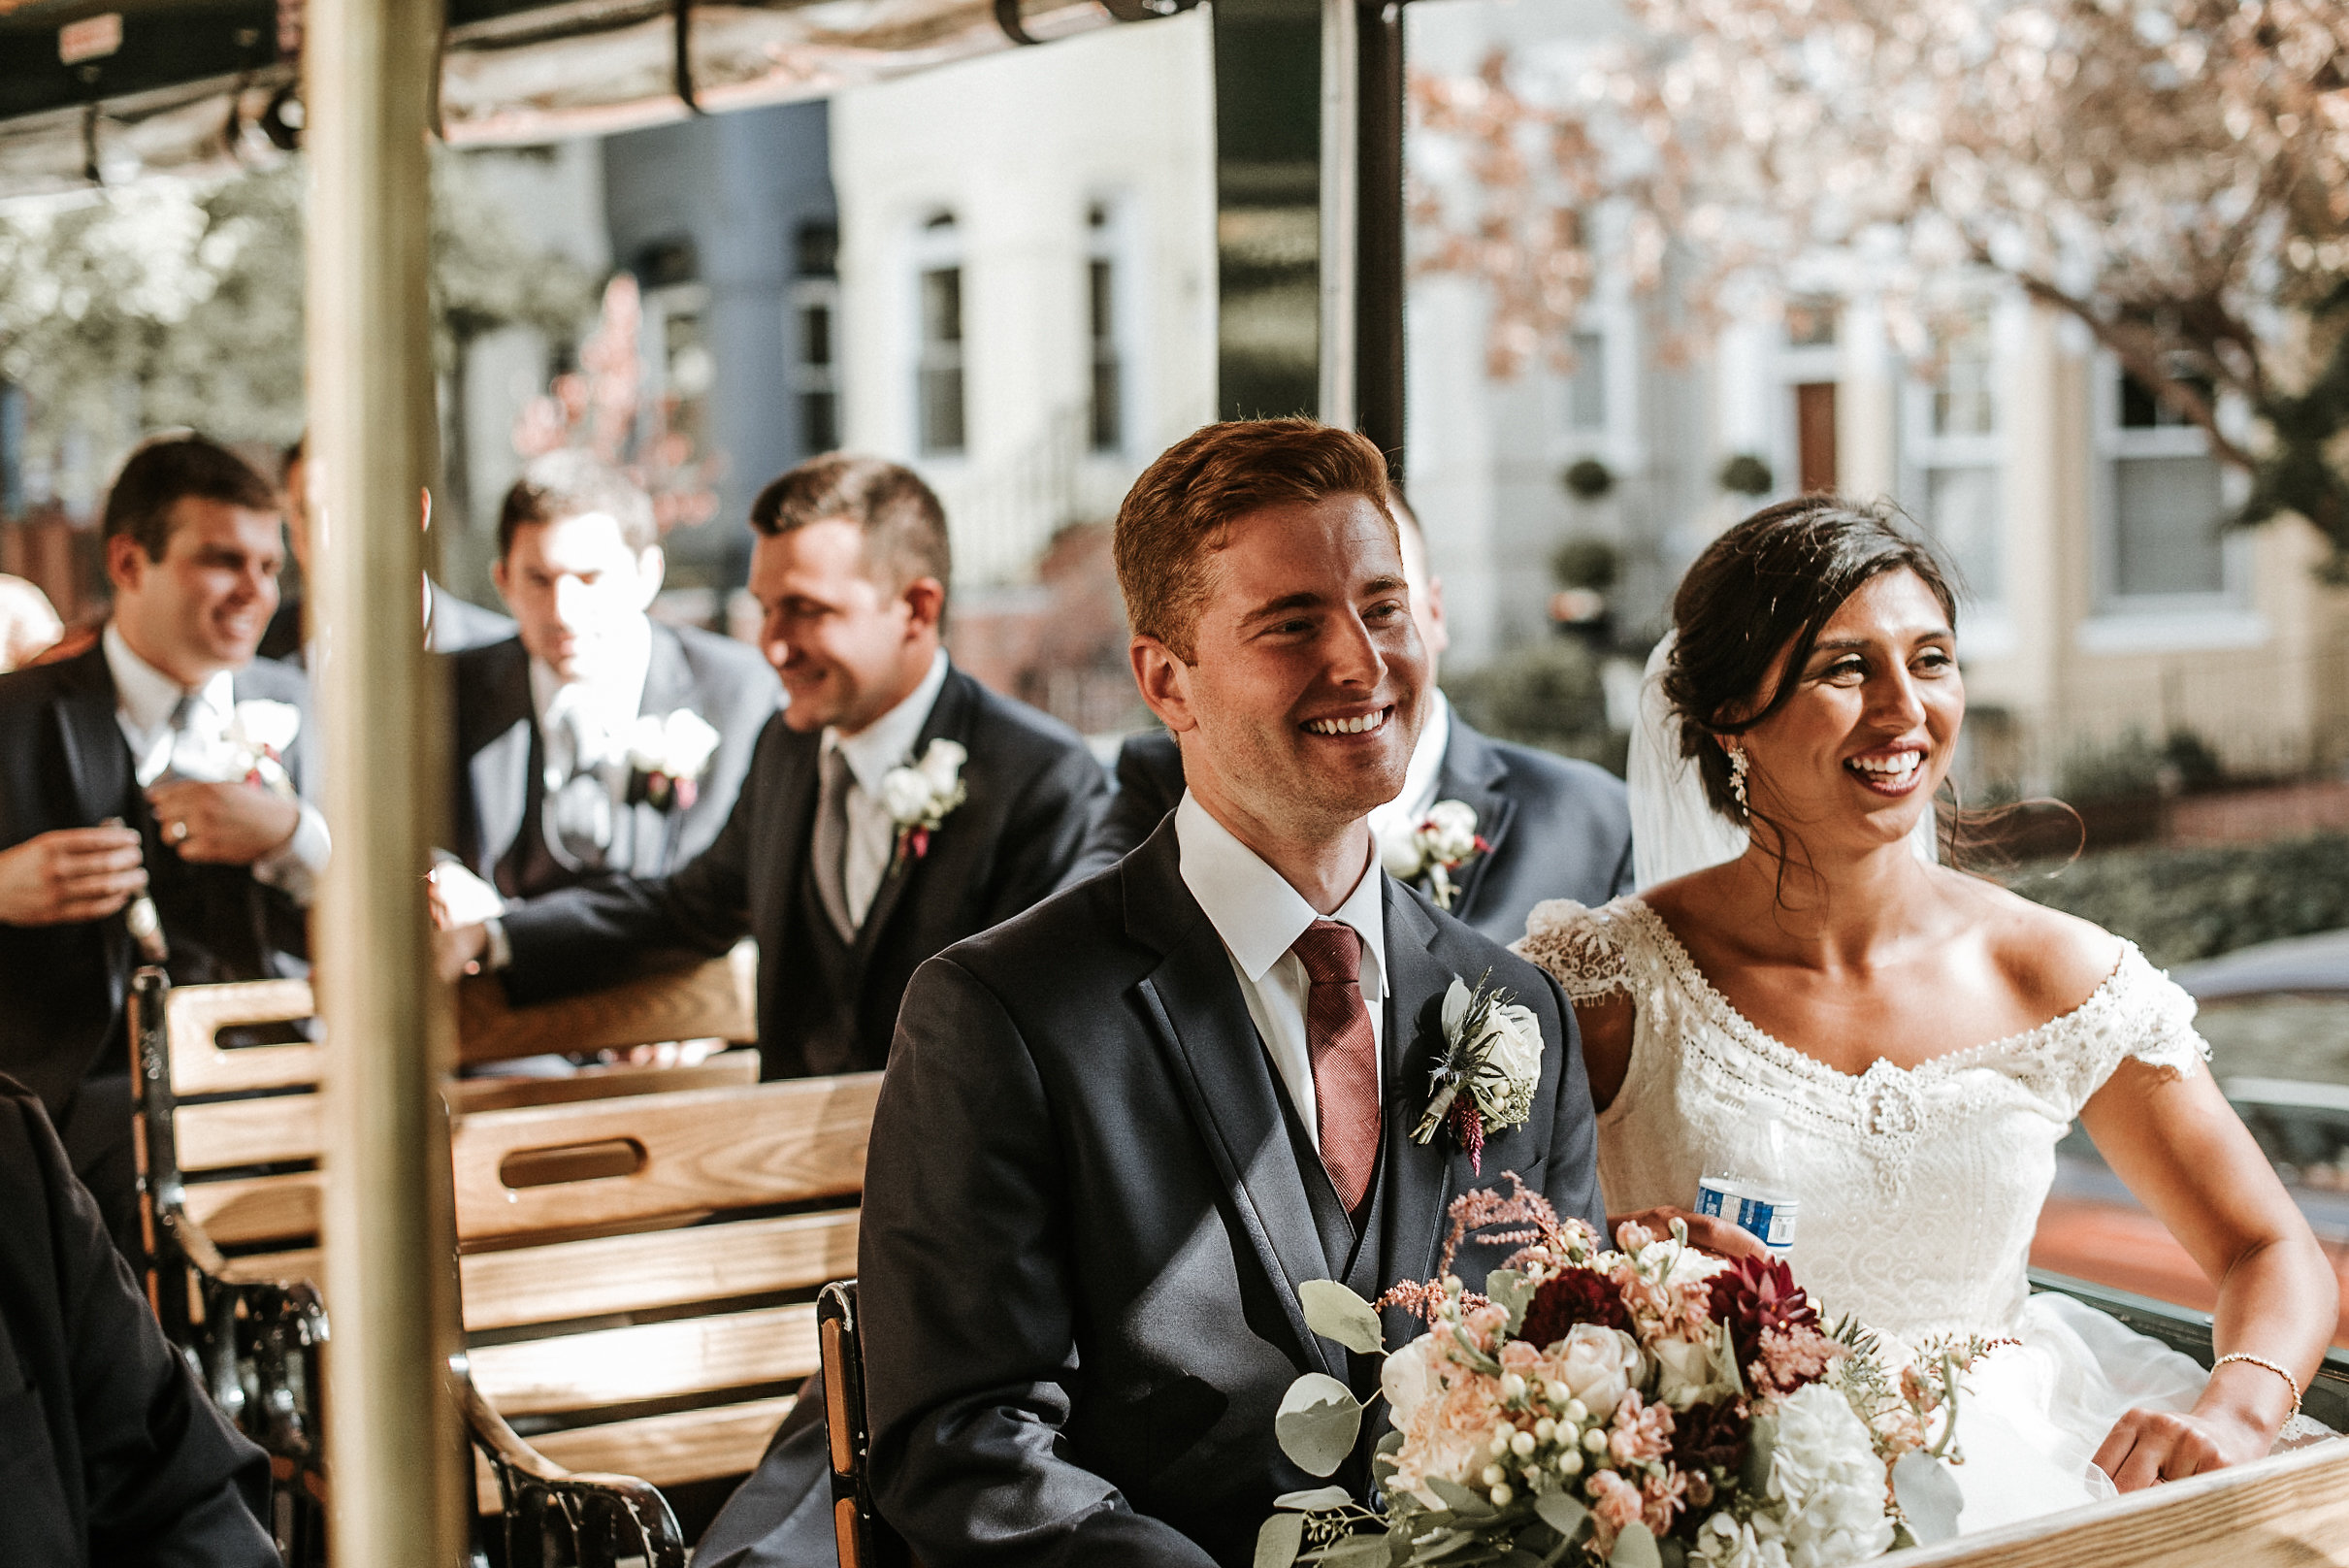 Bride and groom smiling on trolley